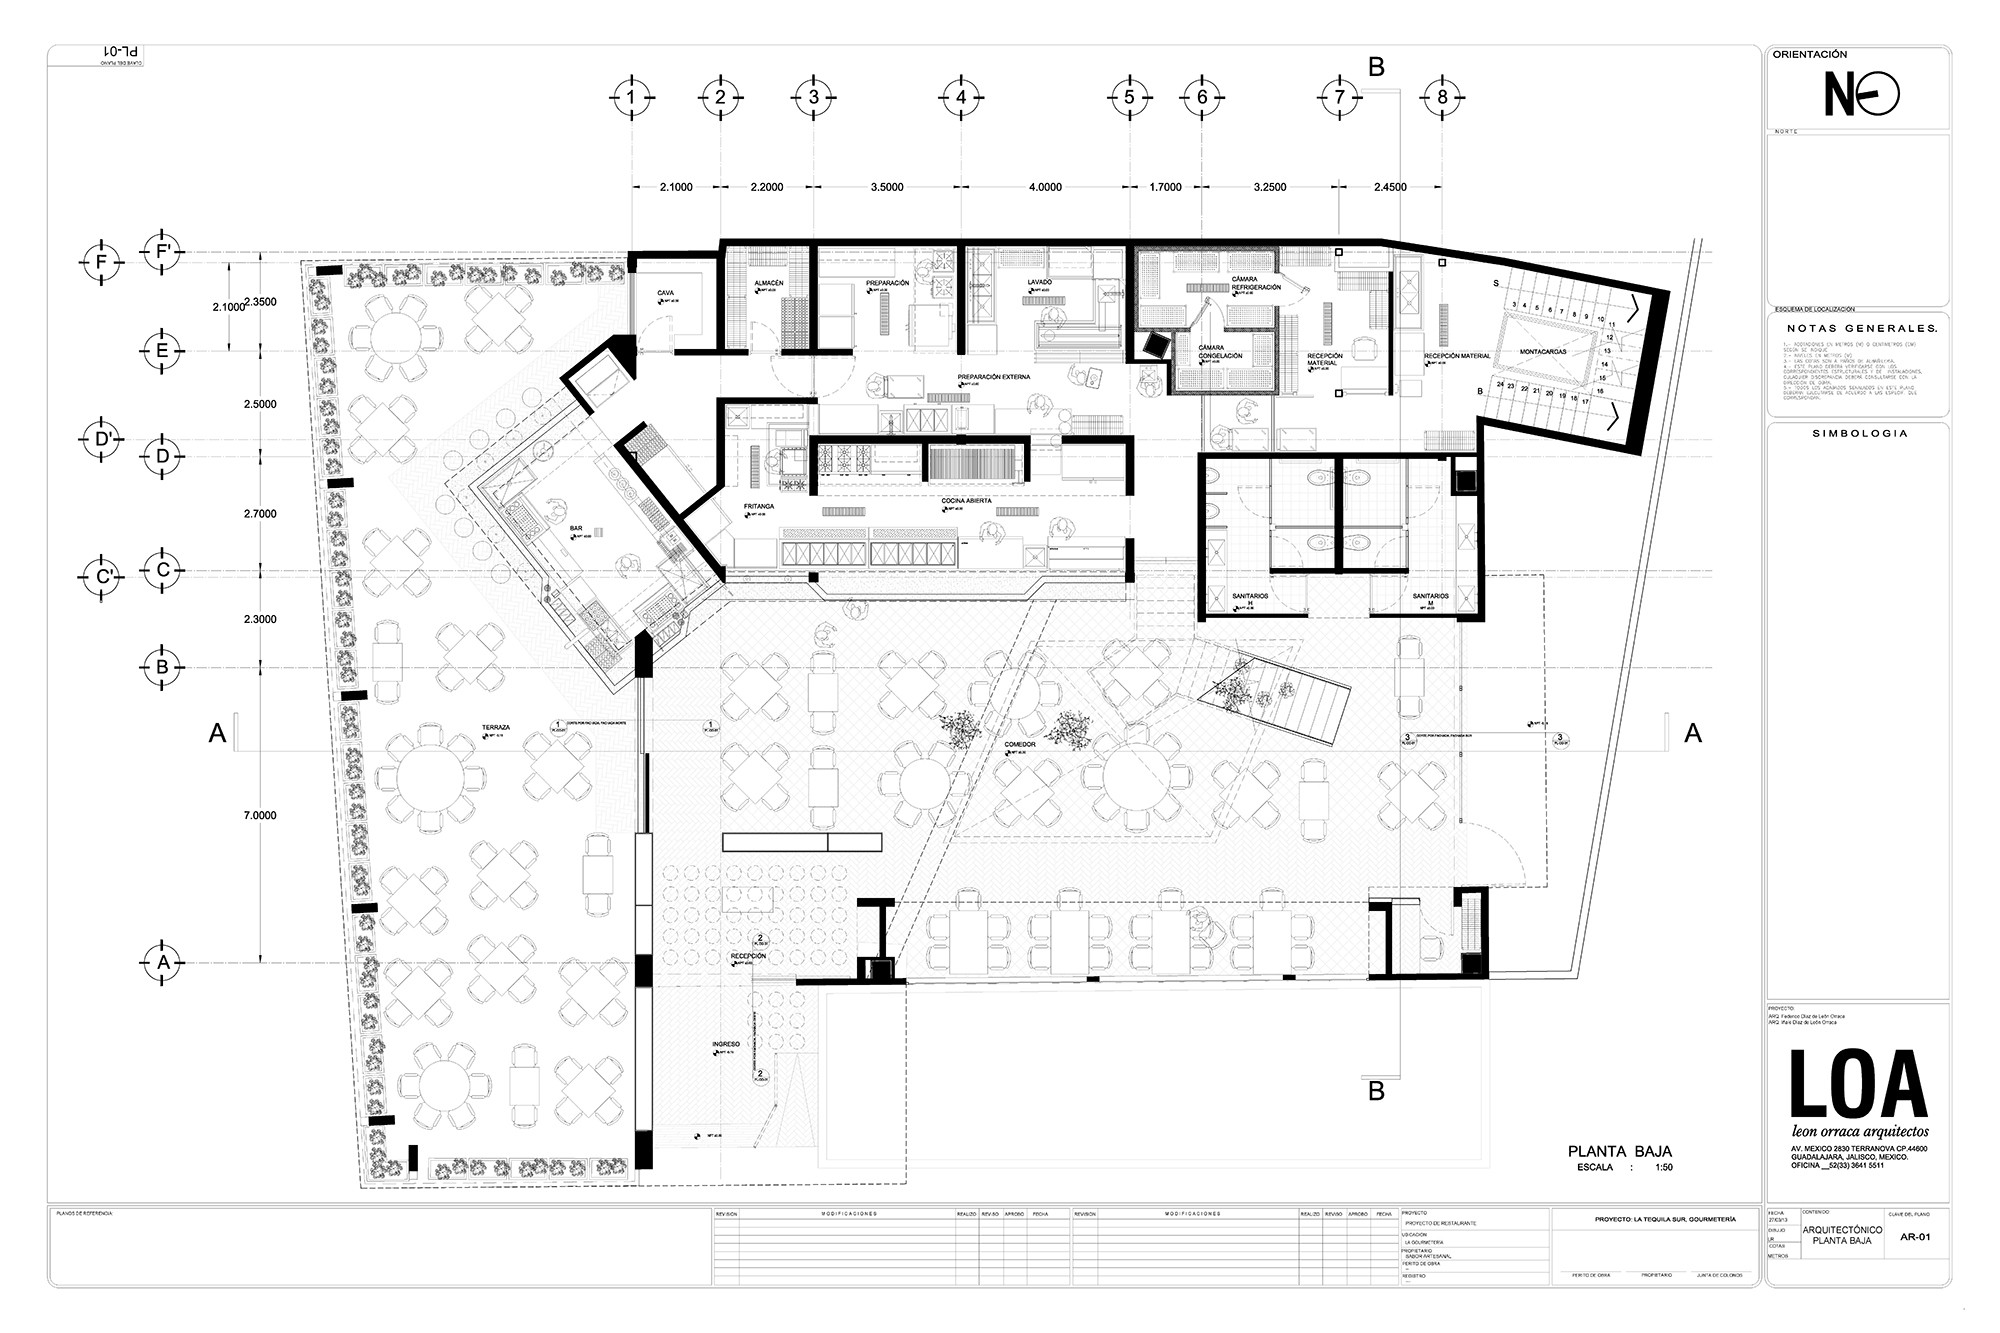 52fb8d4de8e44eac79000158 La Tequila South Restaurant Loa Ground Floor Plan on Coffee Shop Layout Floor Plan